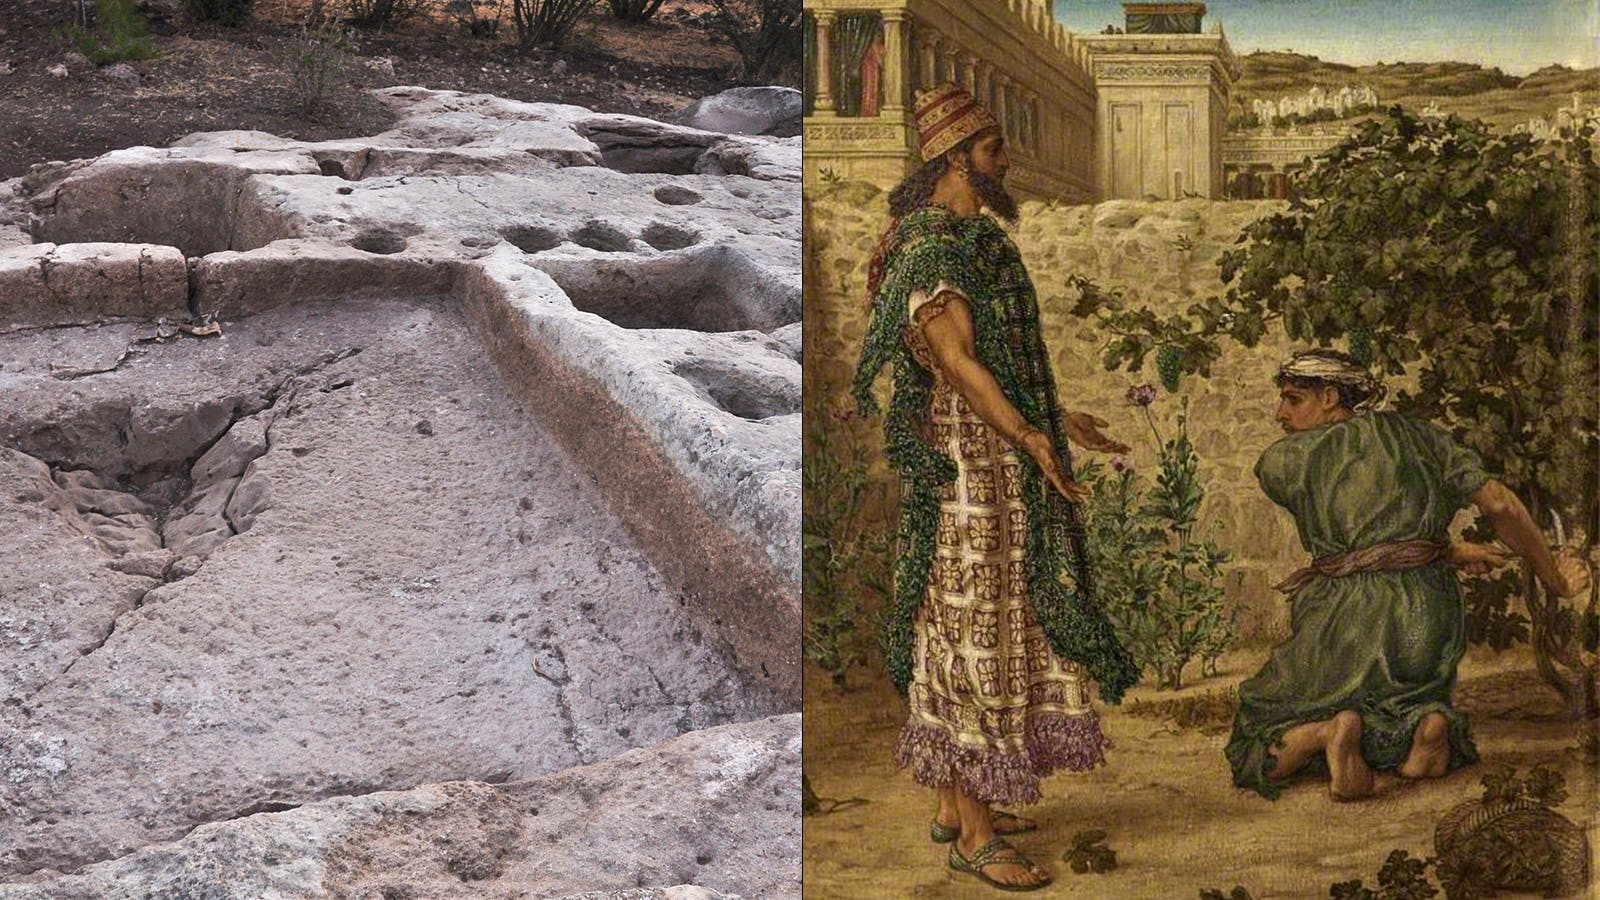 Winery from Bloody Biblical Land Dispute Discovered?